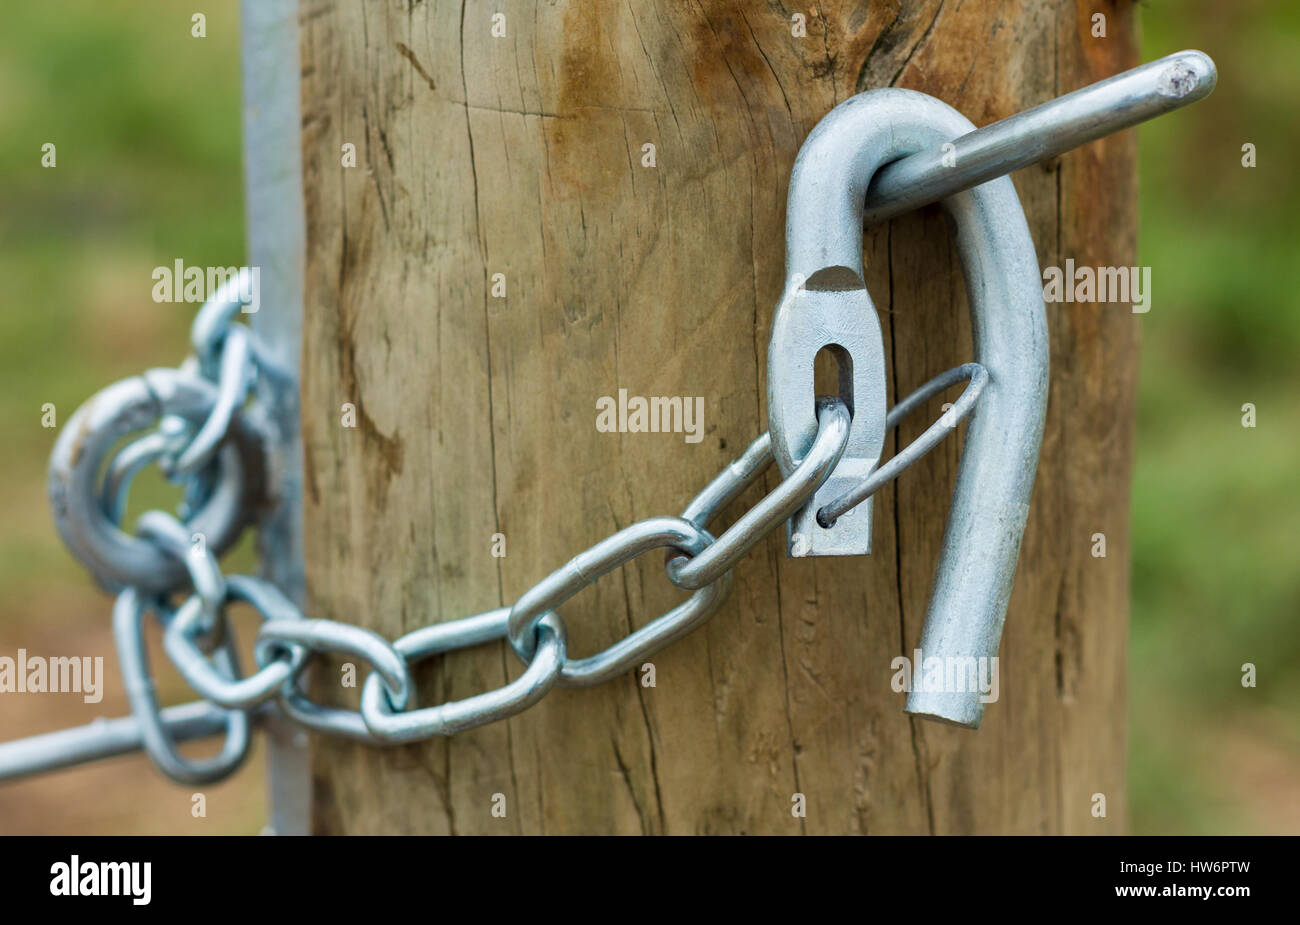 Galvanized gate hook on a wooden fence post. - Stock Image